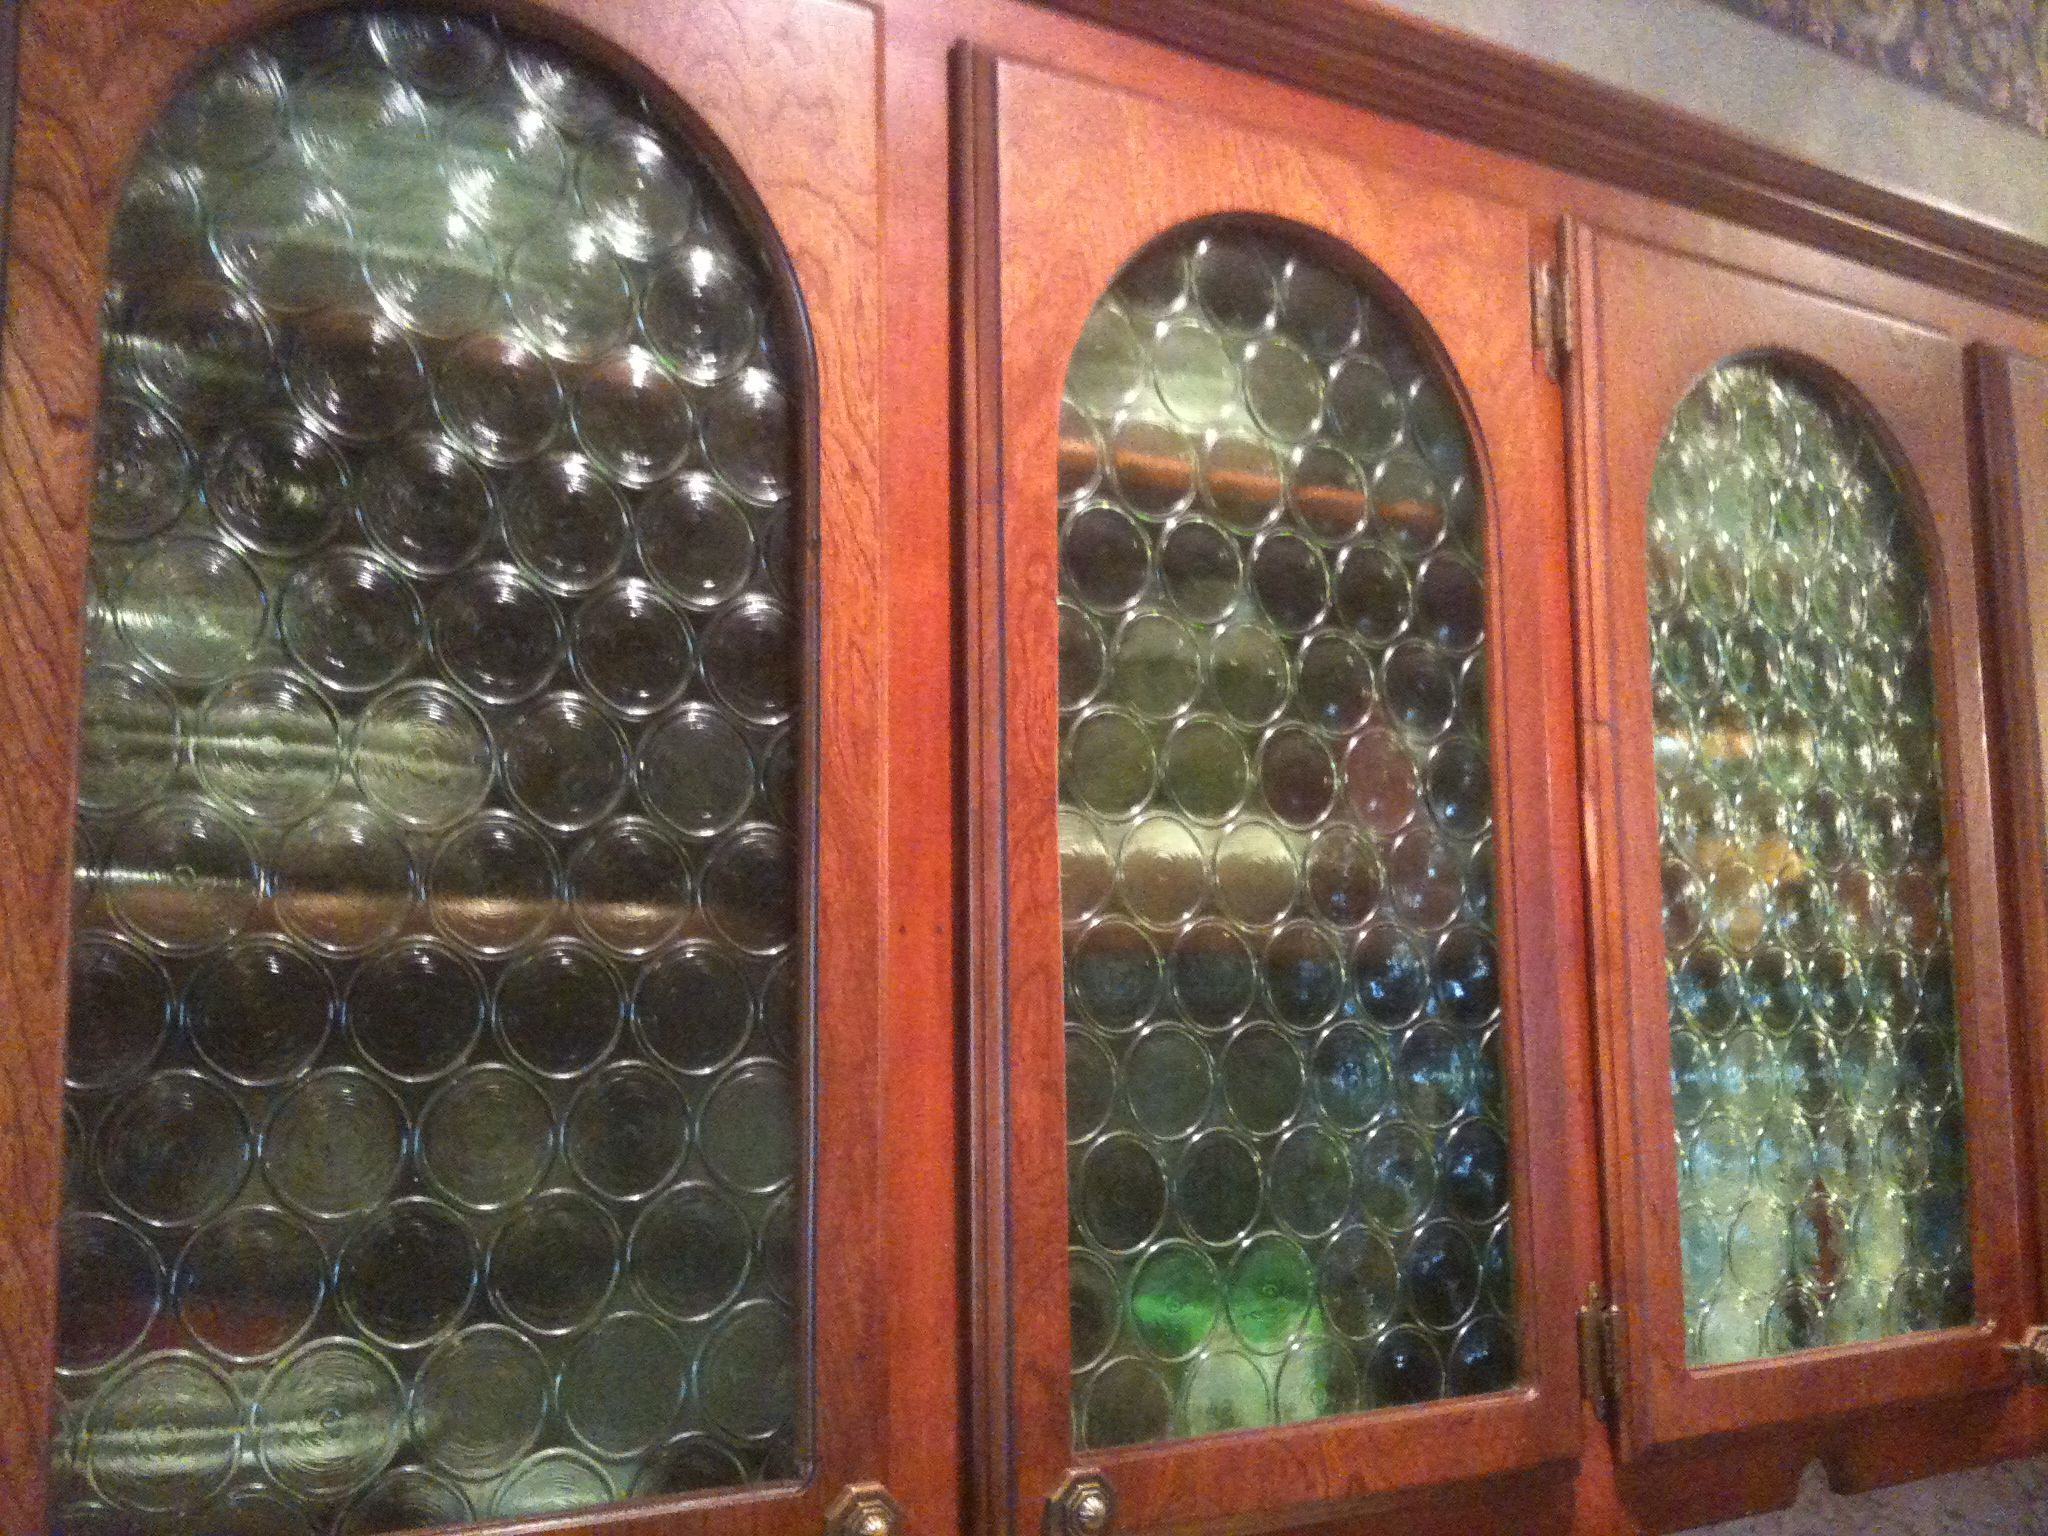 Le Meilleur Glass Coke Bottle Cabinet Doors Ideas For The Home Ce Mois Ci